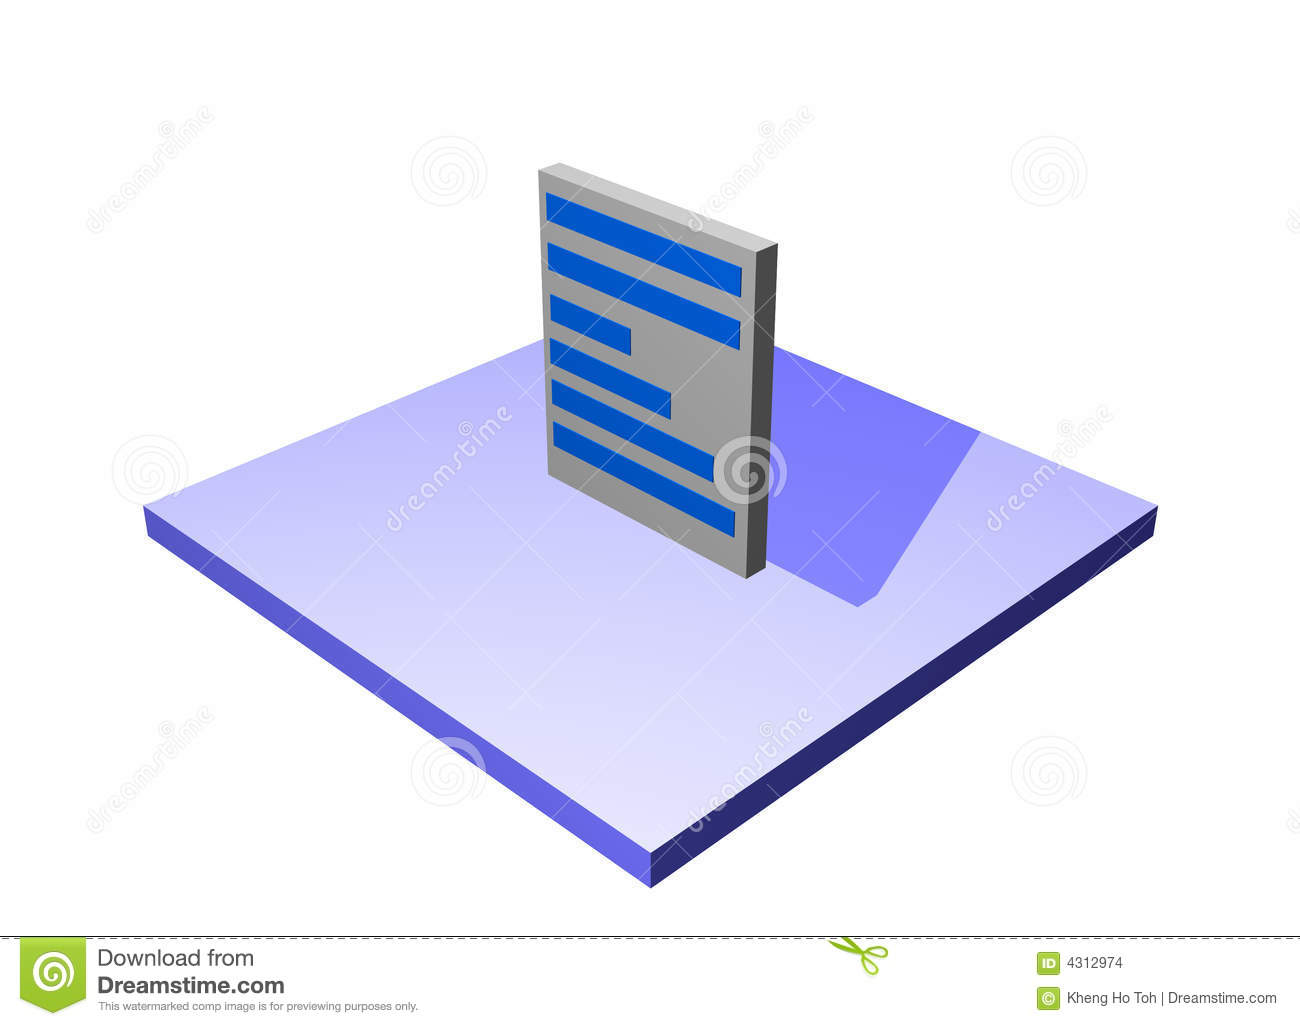 Document A Logistics Supply Chain Diagram Object Stock Illustration